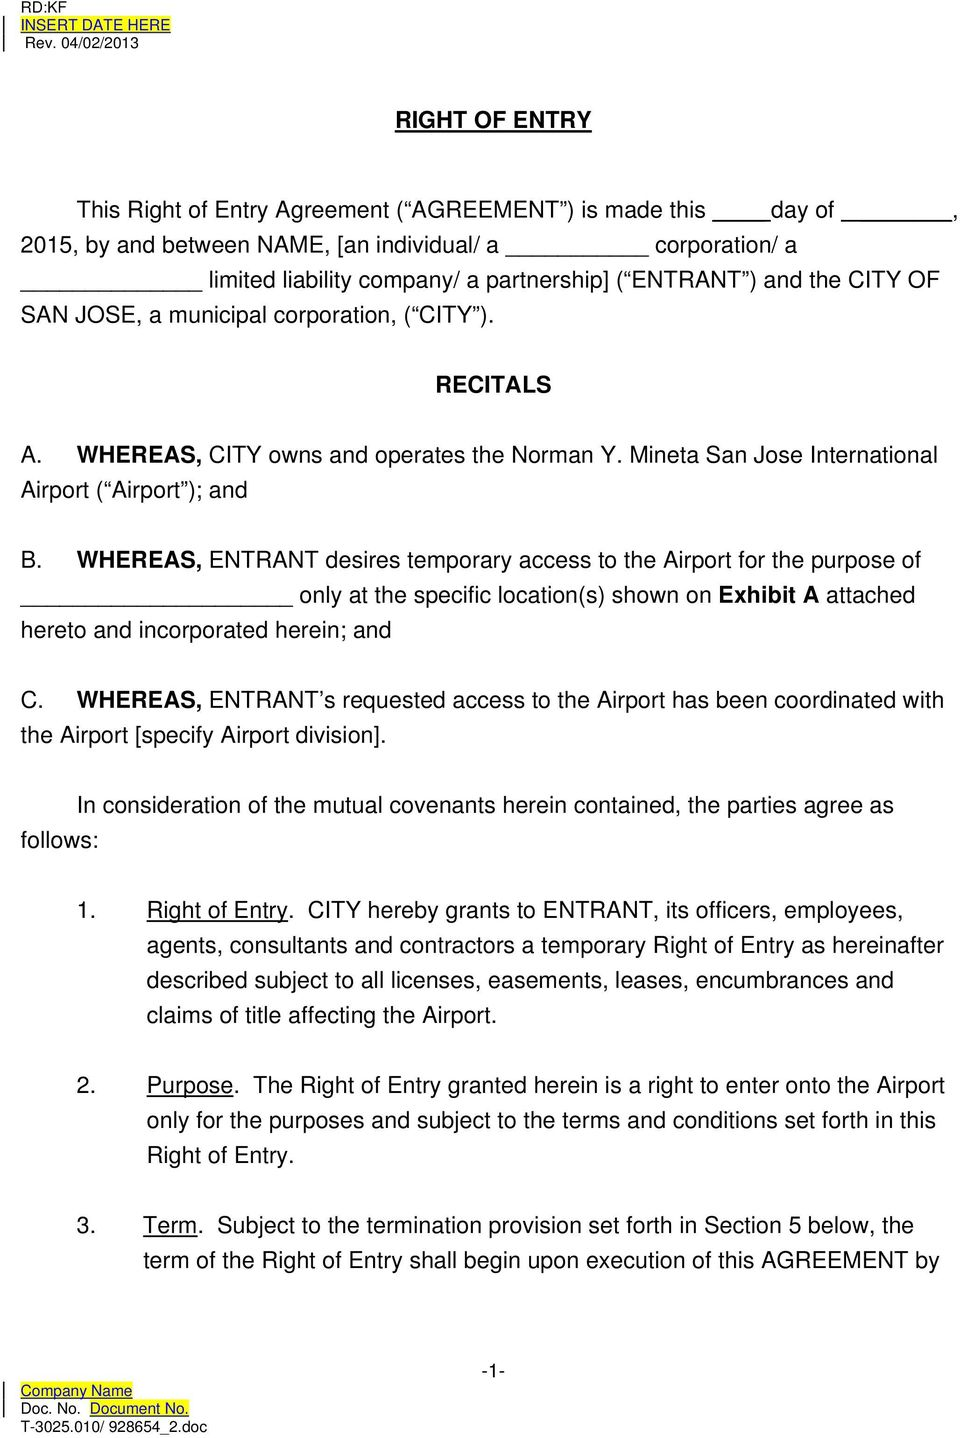 WHEREAS, ENTRANT desires temporary access to the Airport for the purpose of only at the specific location(s) shown on Exhibit A attached hereto and incorporated herein; and C.